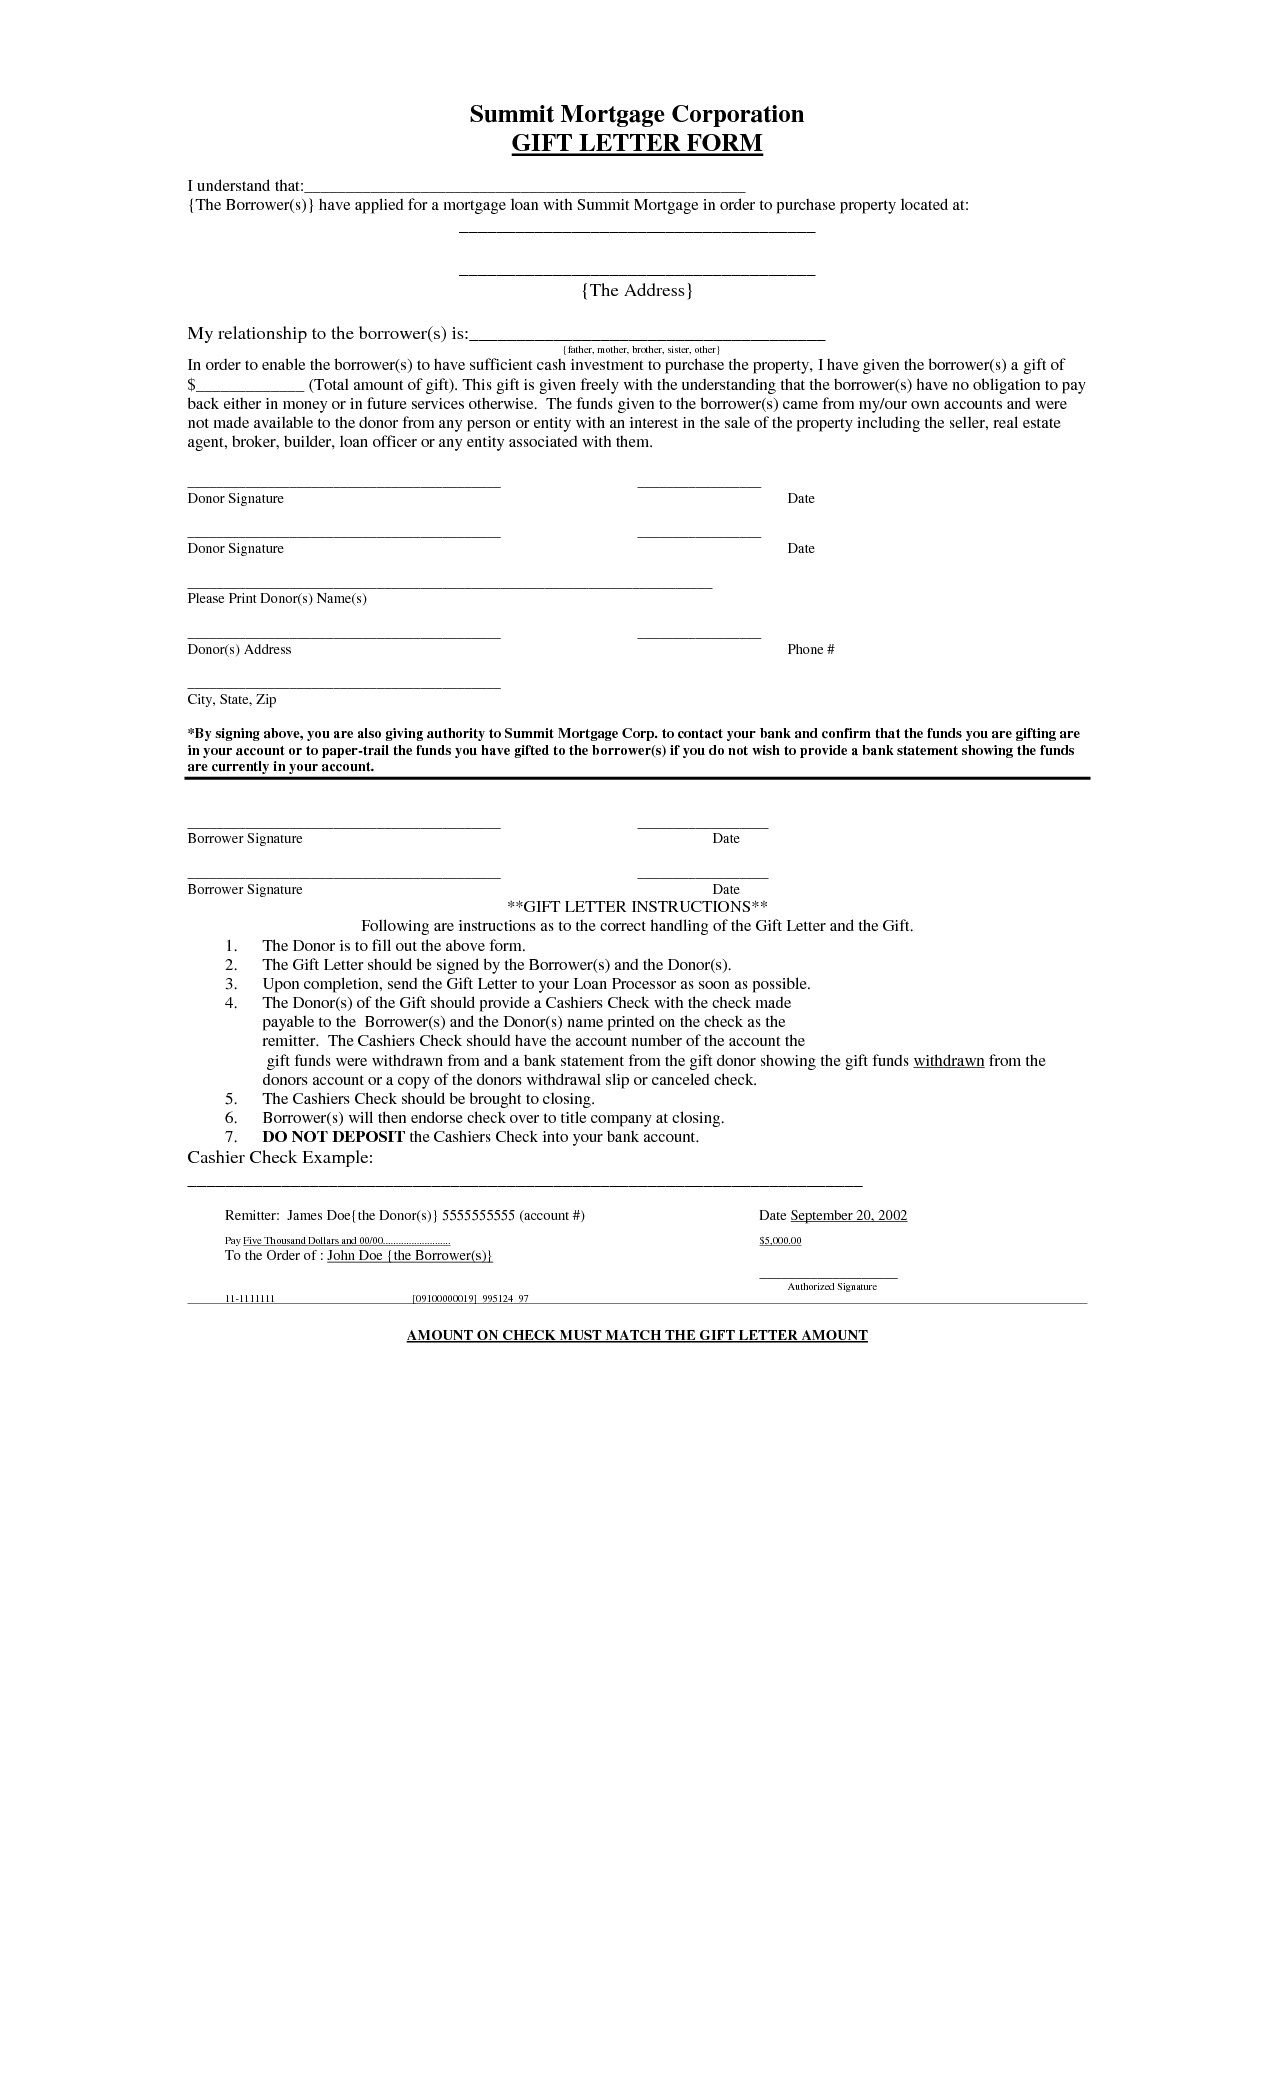 Gift Letter Template for Home Loan - Mortgage Loan Gift Letter Template Archaicawful Loan T Letter